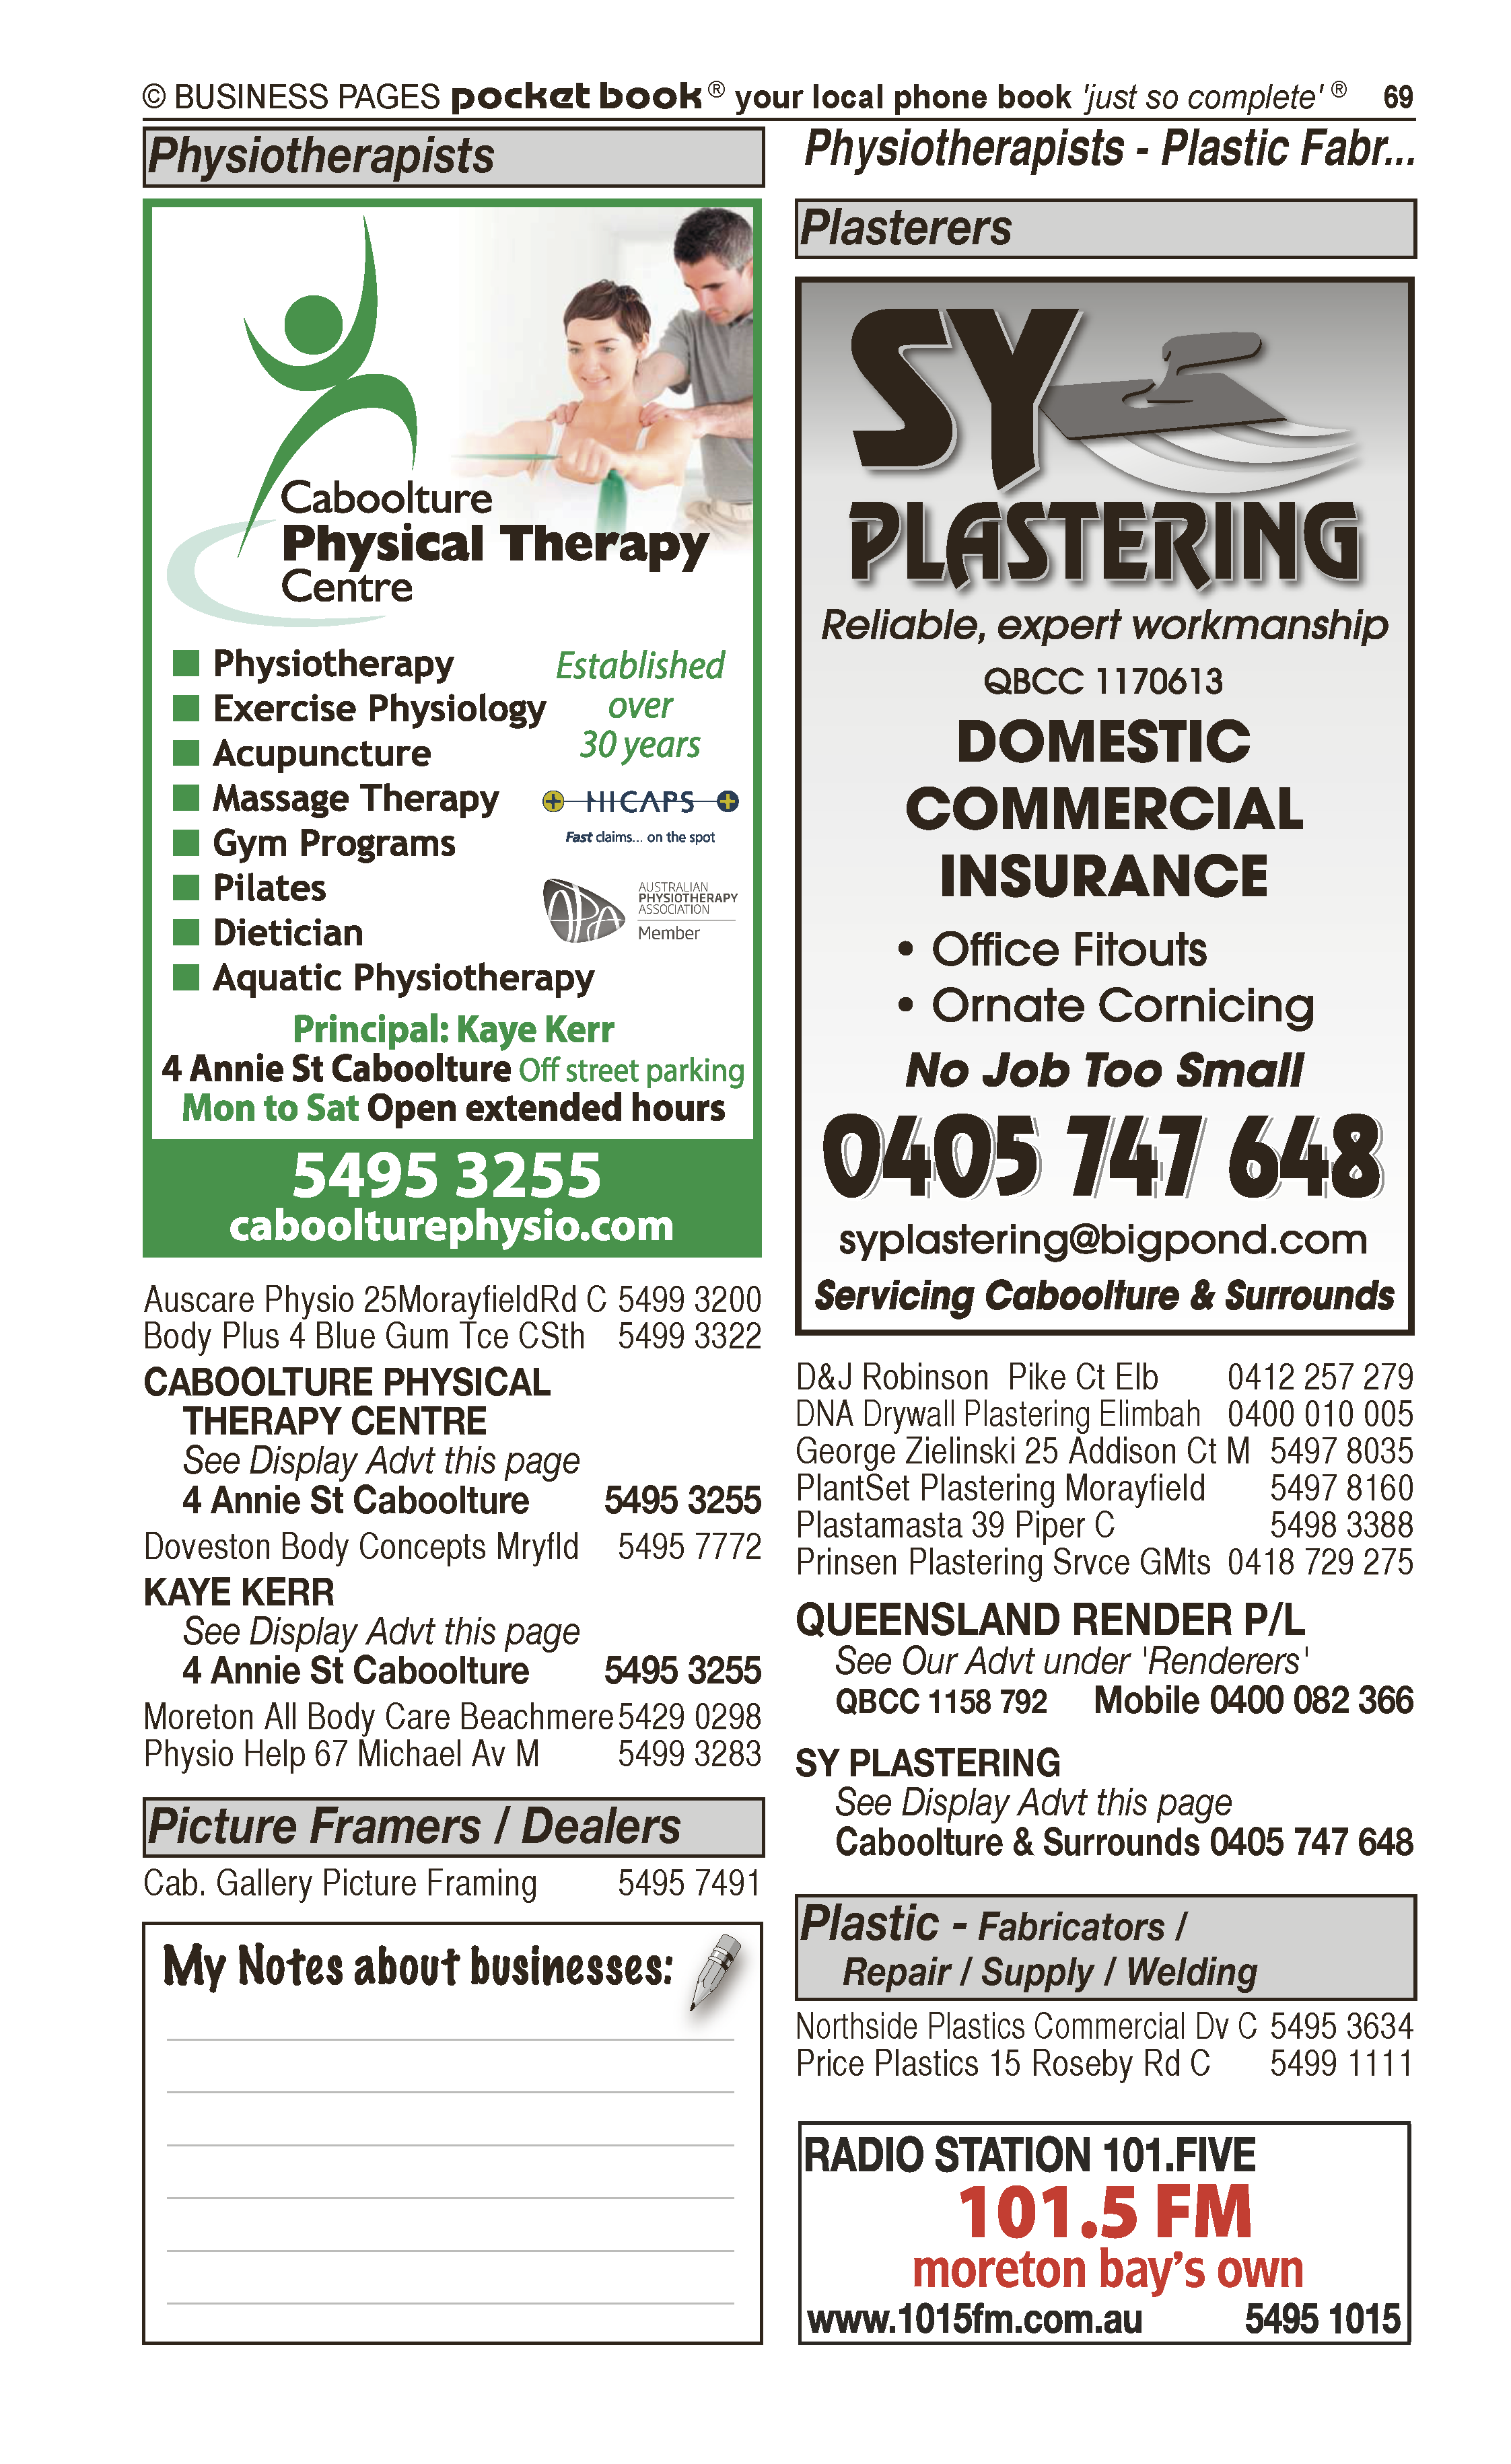 Caboolture Powdercoaters Pty Ltd in Caboolture QLD - page 69